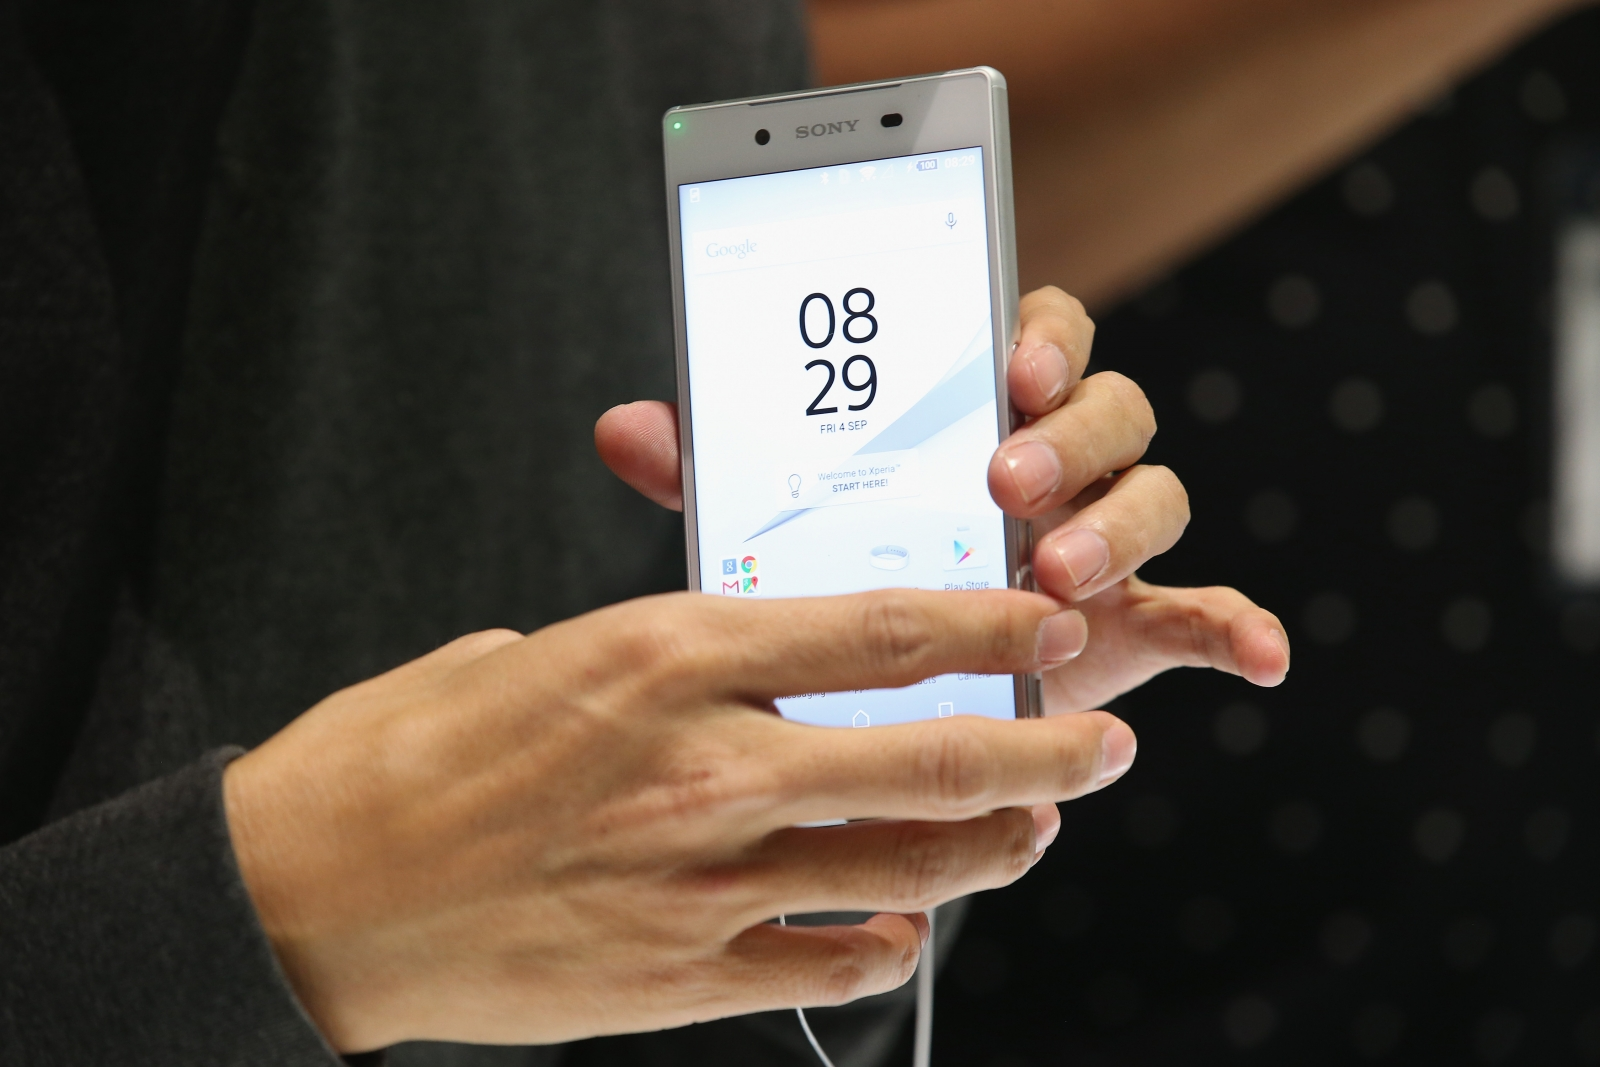 Xperia Z5 low volume issue incoming calls